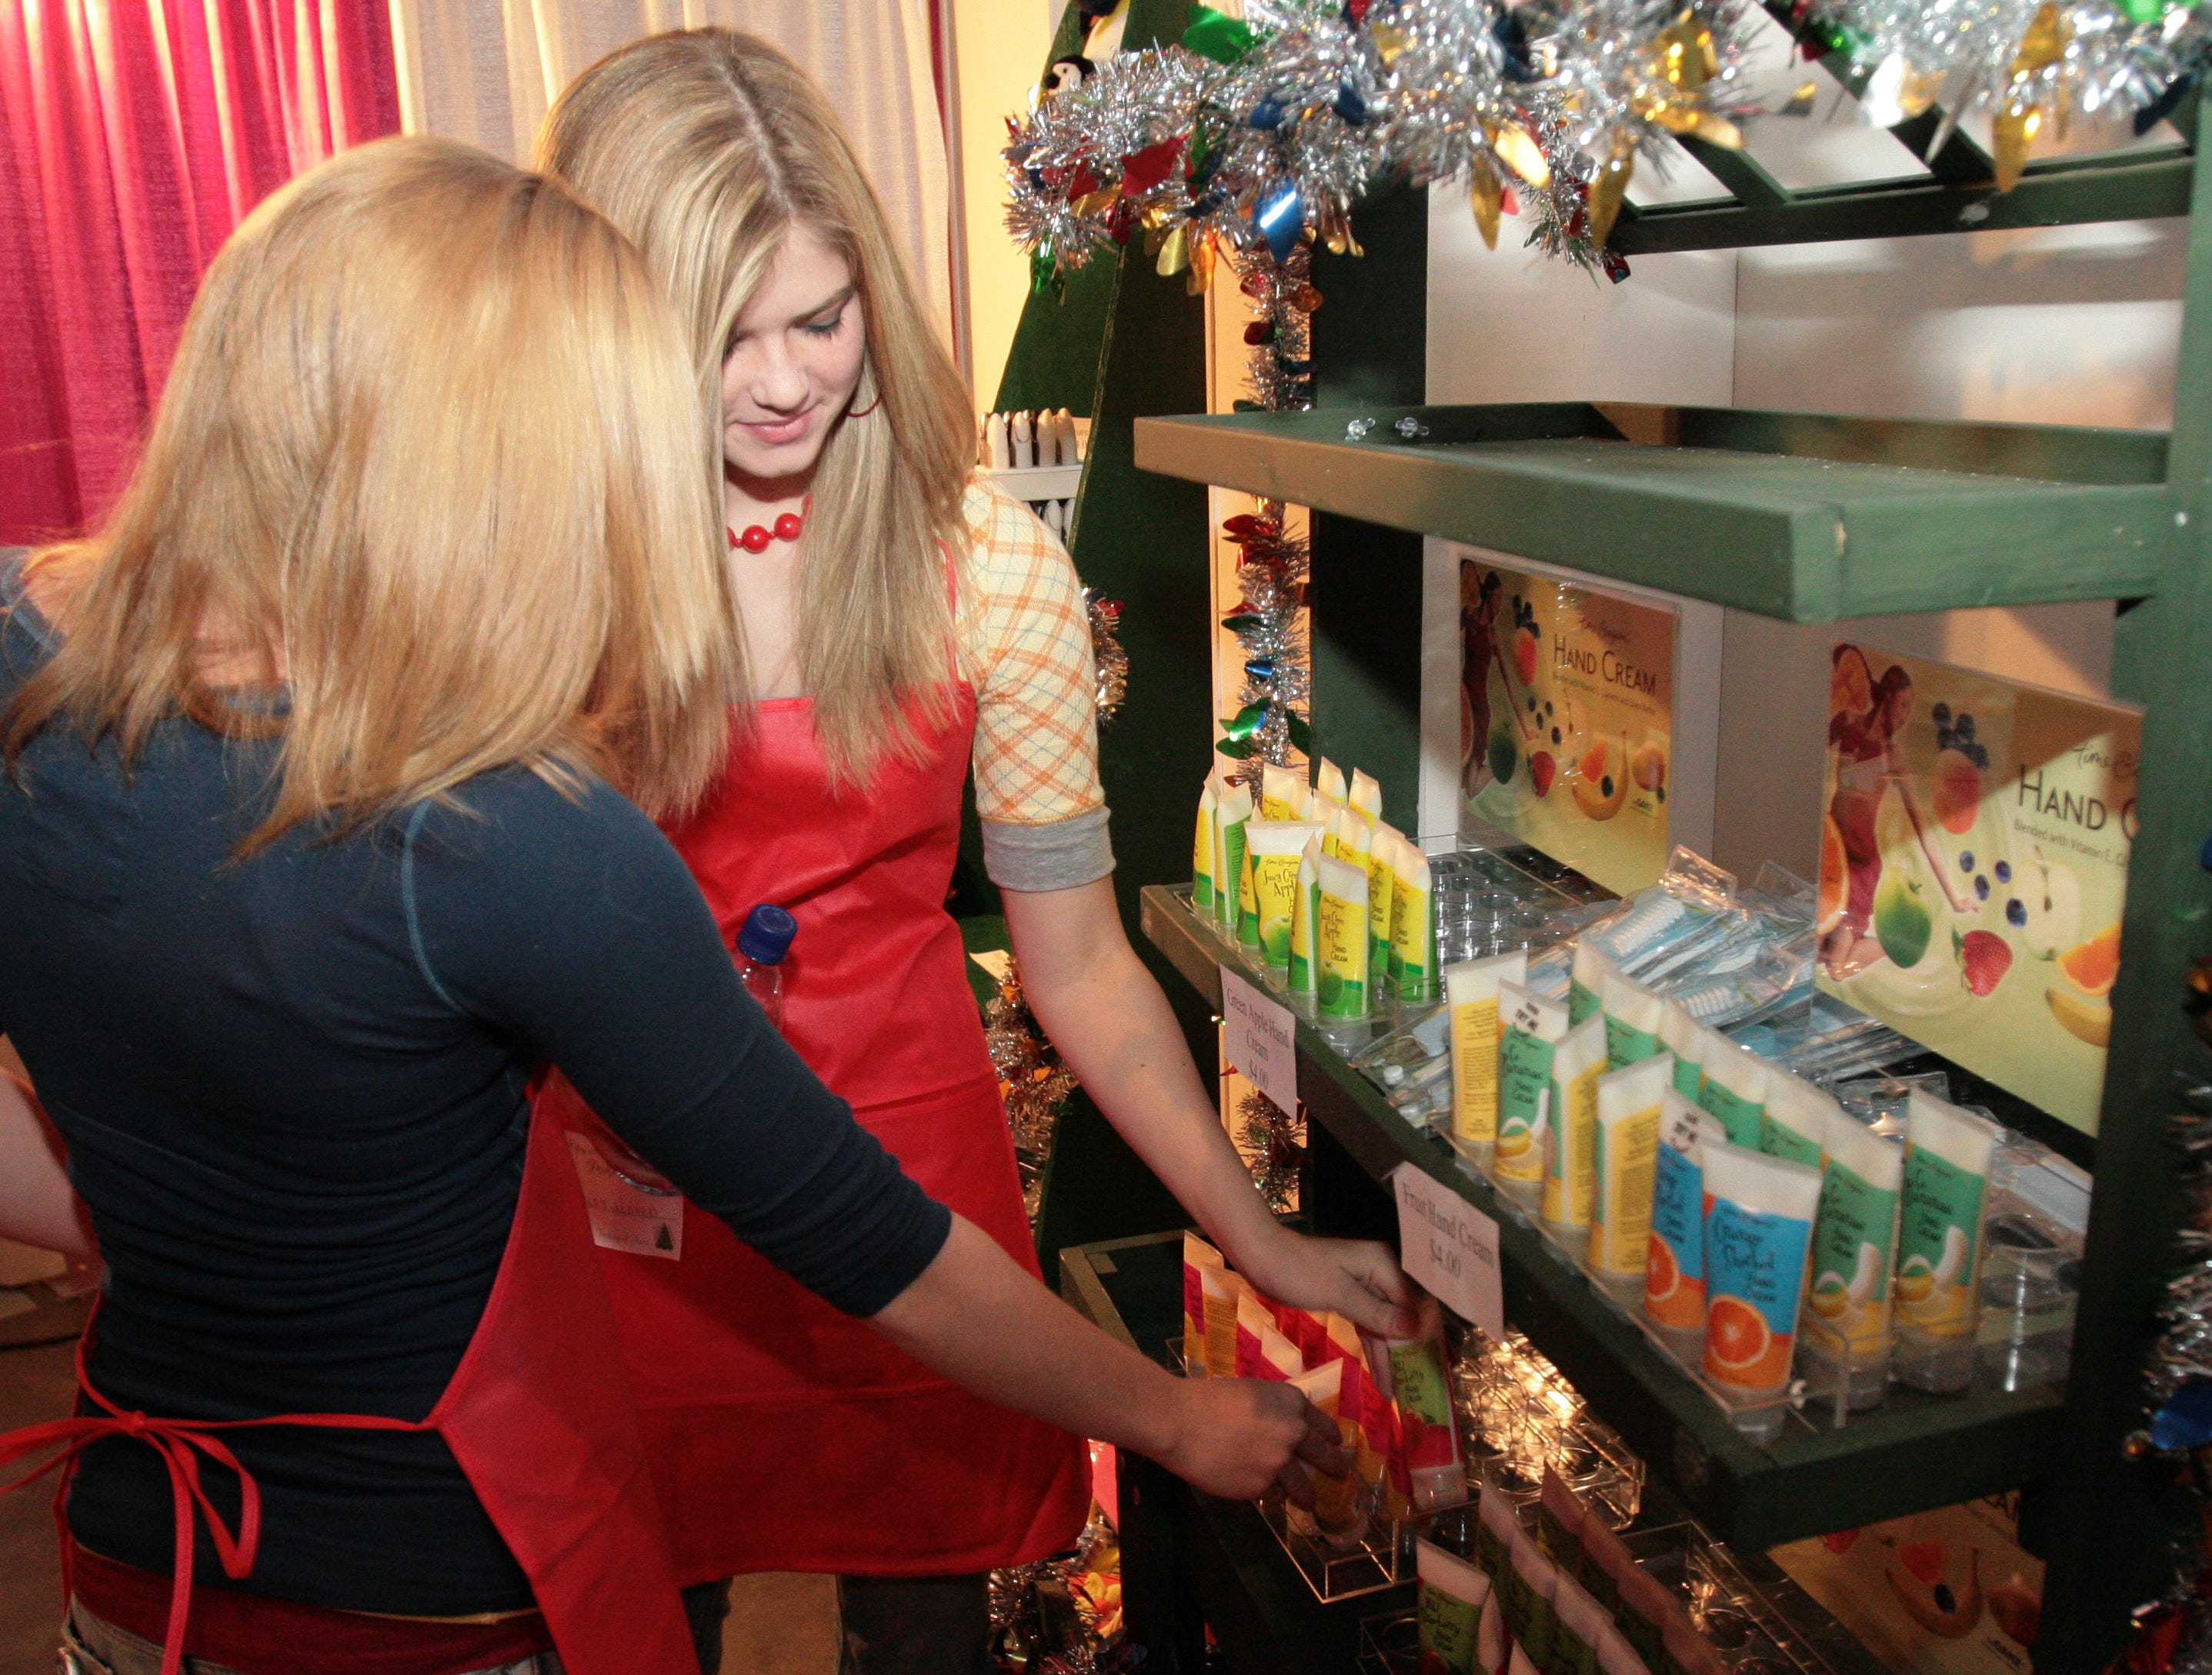 Volunteers Victoria McCauley, 16, left, and Hayley Jensen, 14, stock the selves in the Secret Santa shop at the Fantasy of Trees on Friday at the Knoxville Convention Center.   Photo special to the News Sentinel by Chad Greene